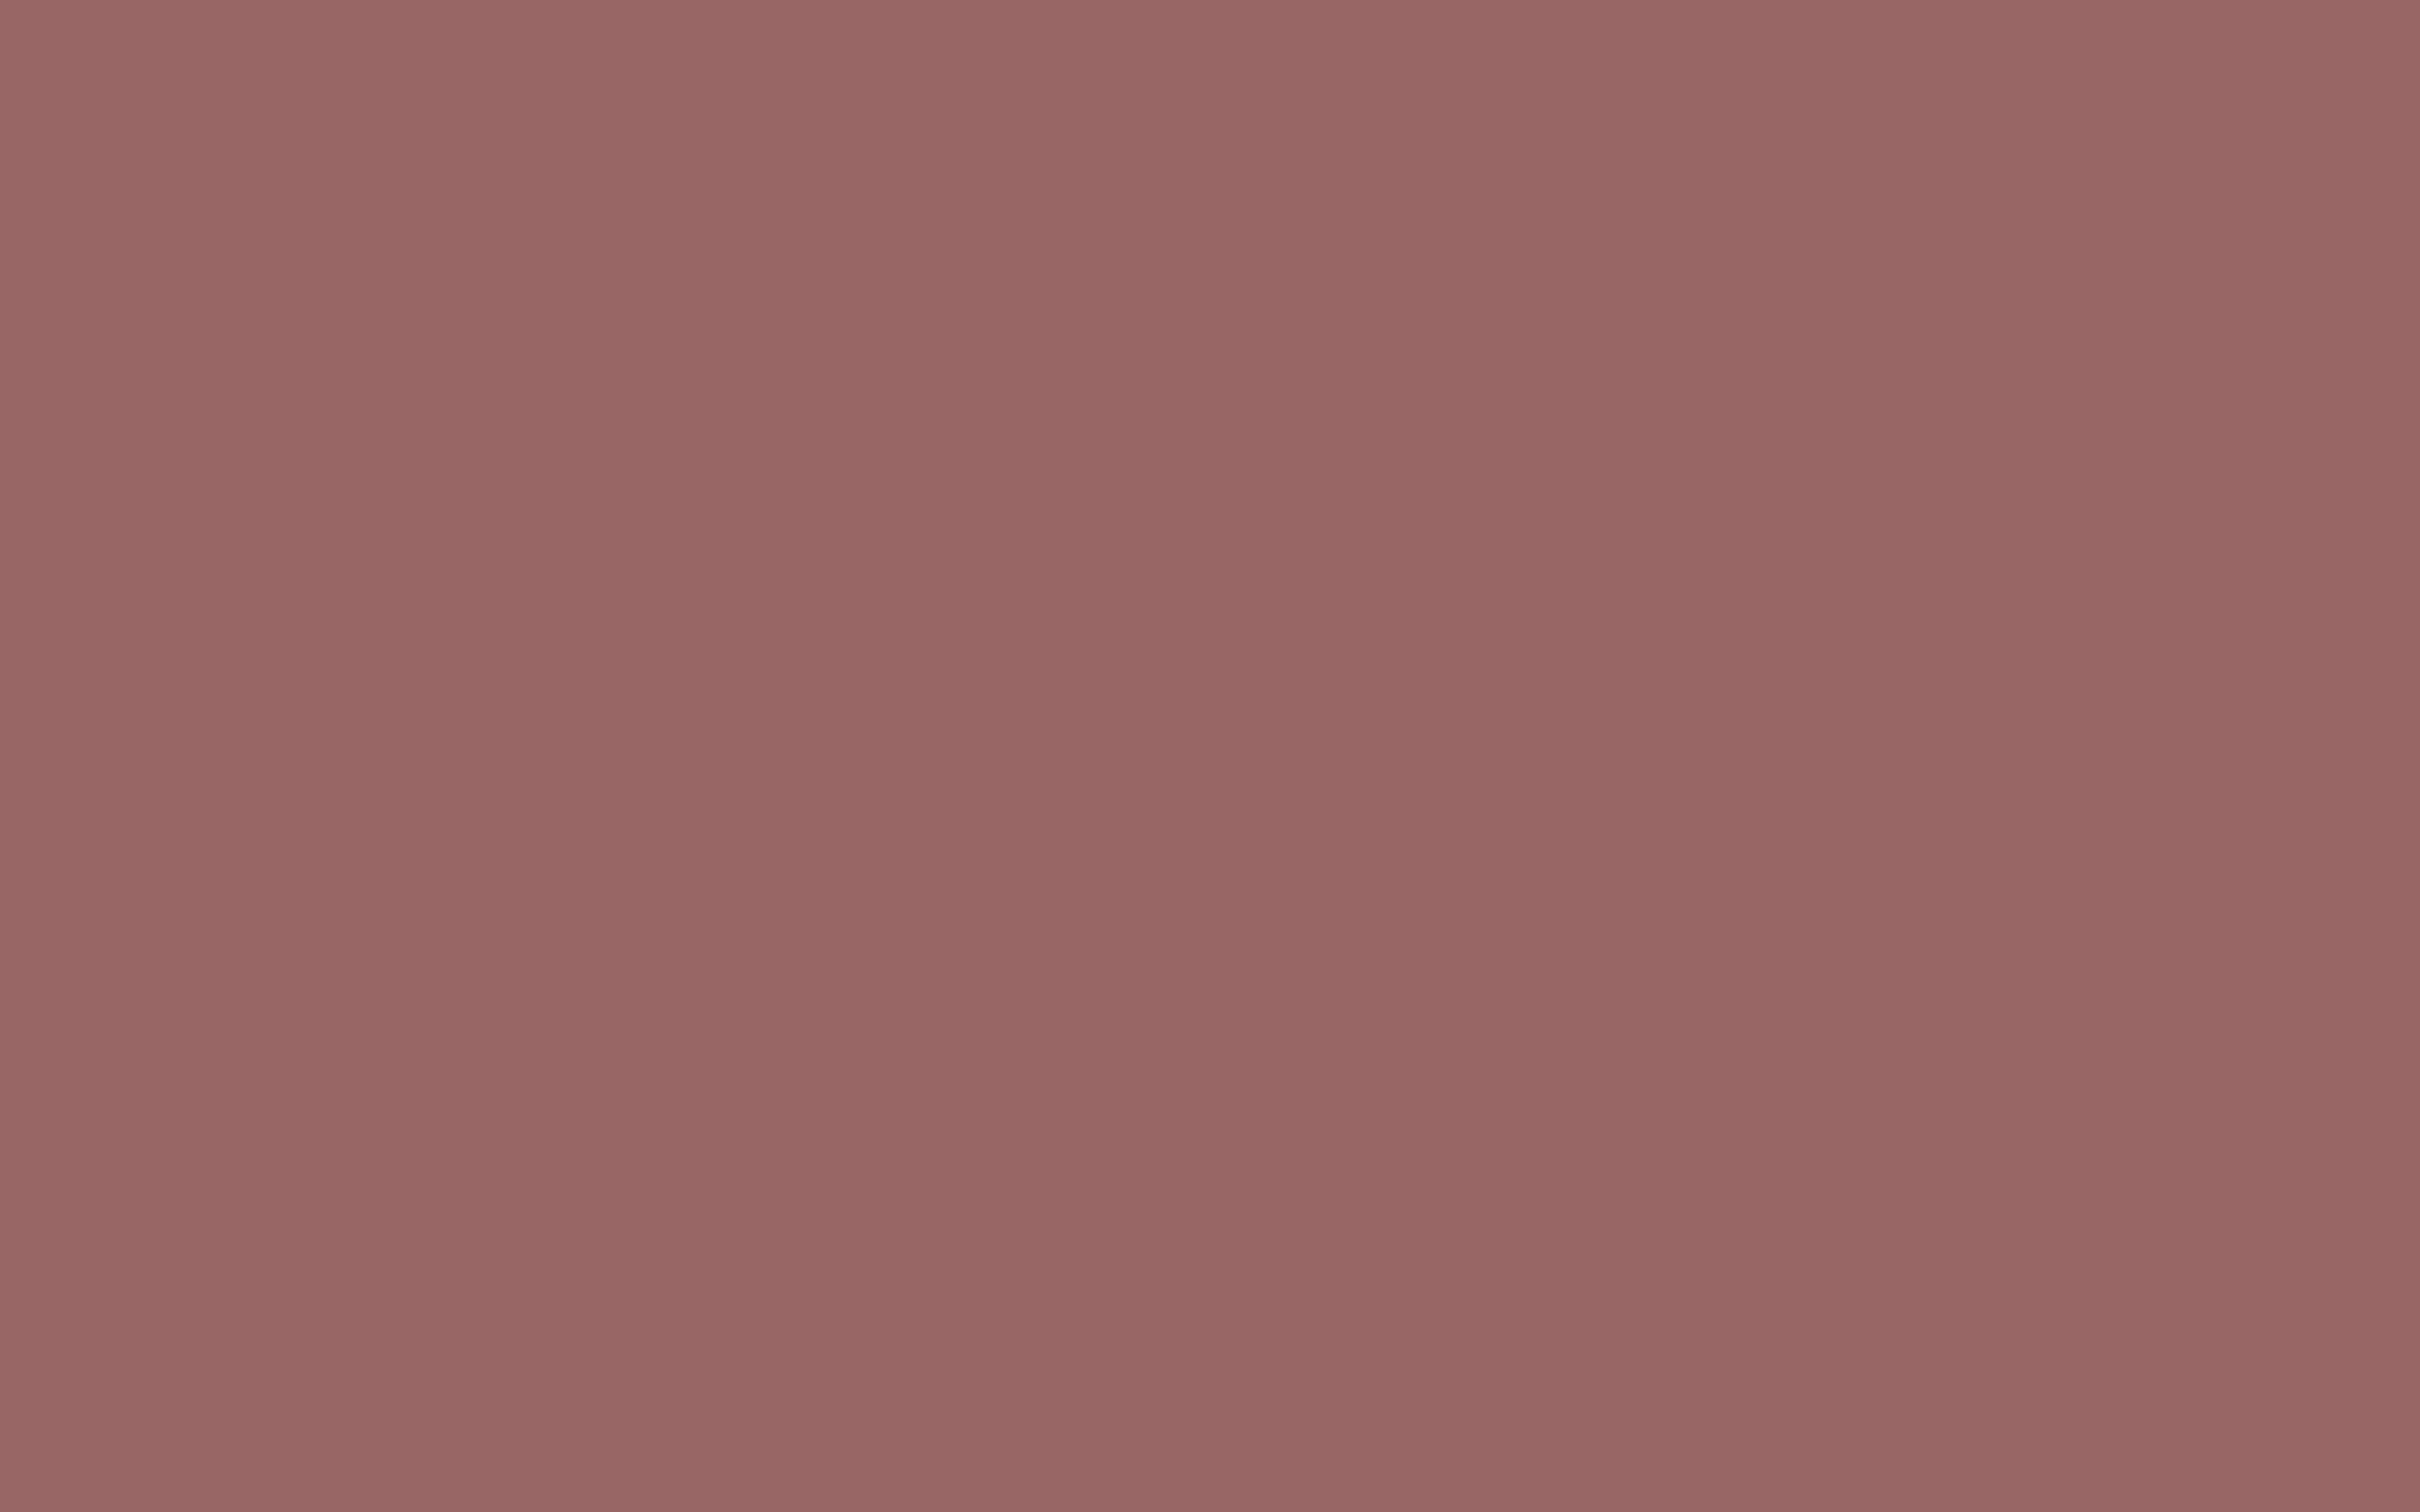 2560x1600 Copper Rose Solid Color Background